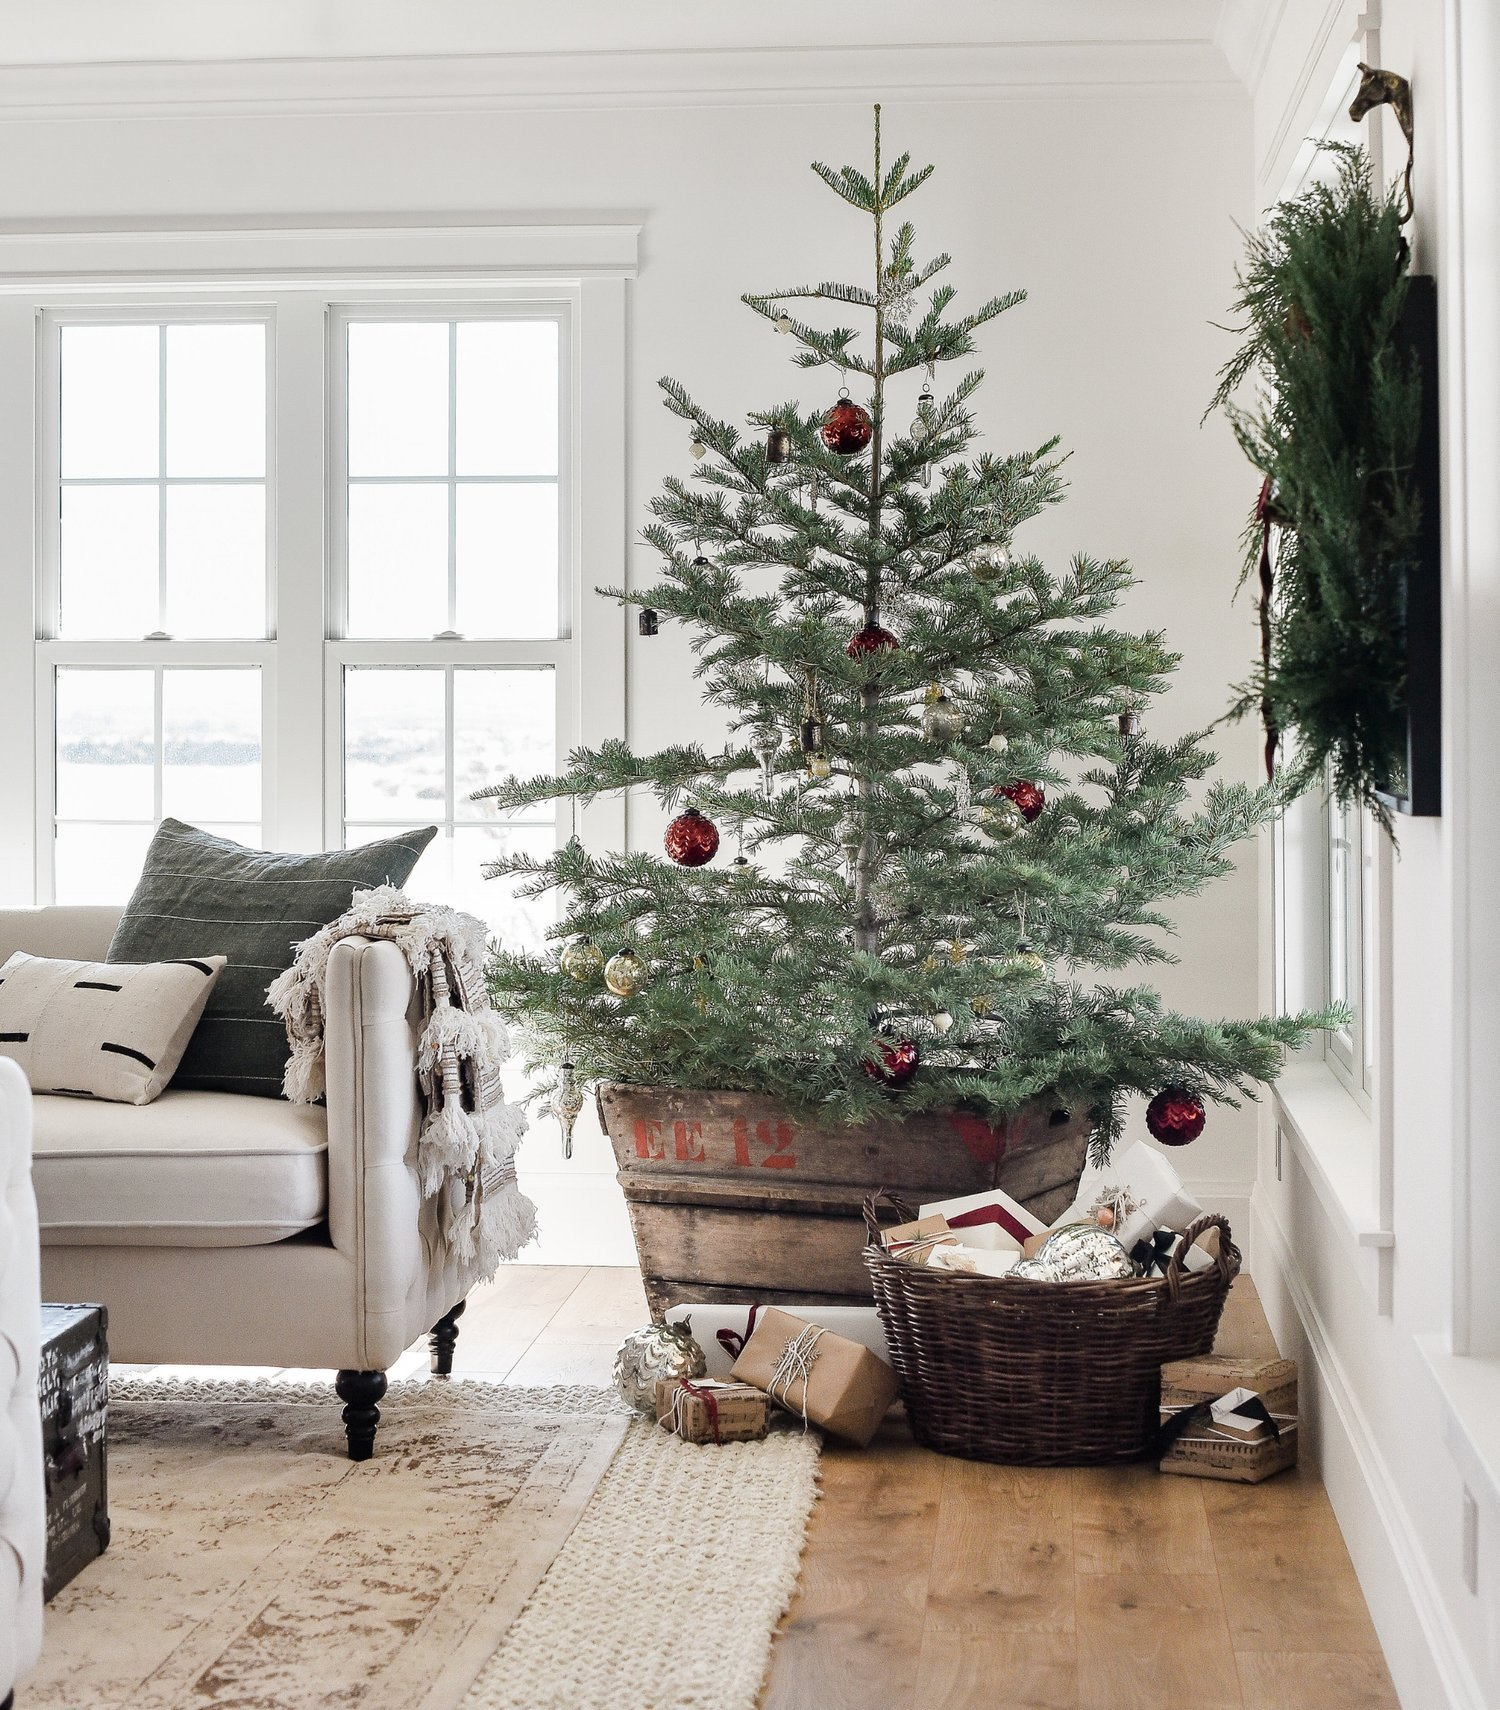 Tree Decor for Living Room Farmhouse Christmas Decor Living Room & Tree Ideas